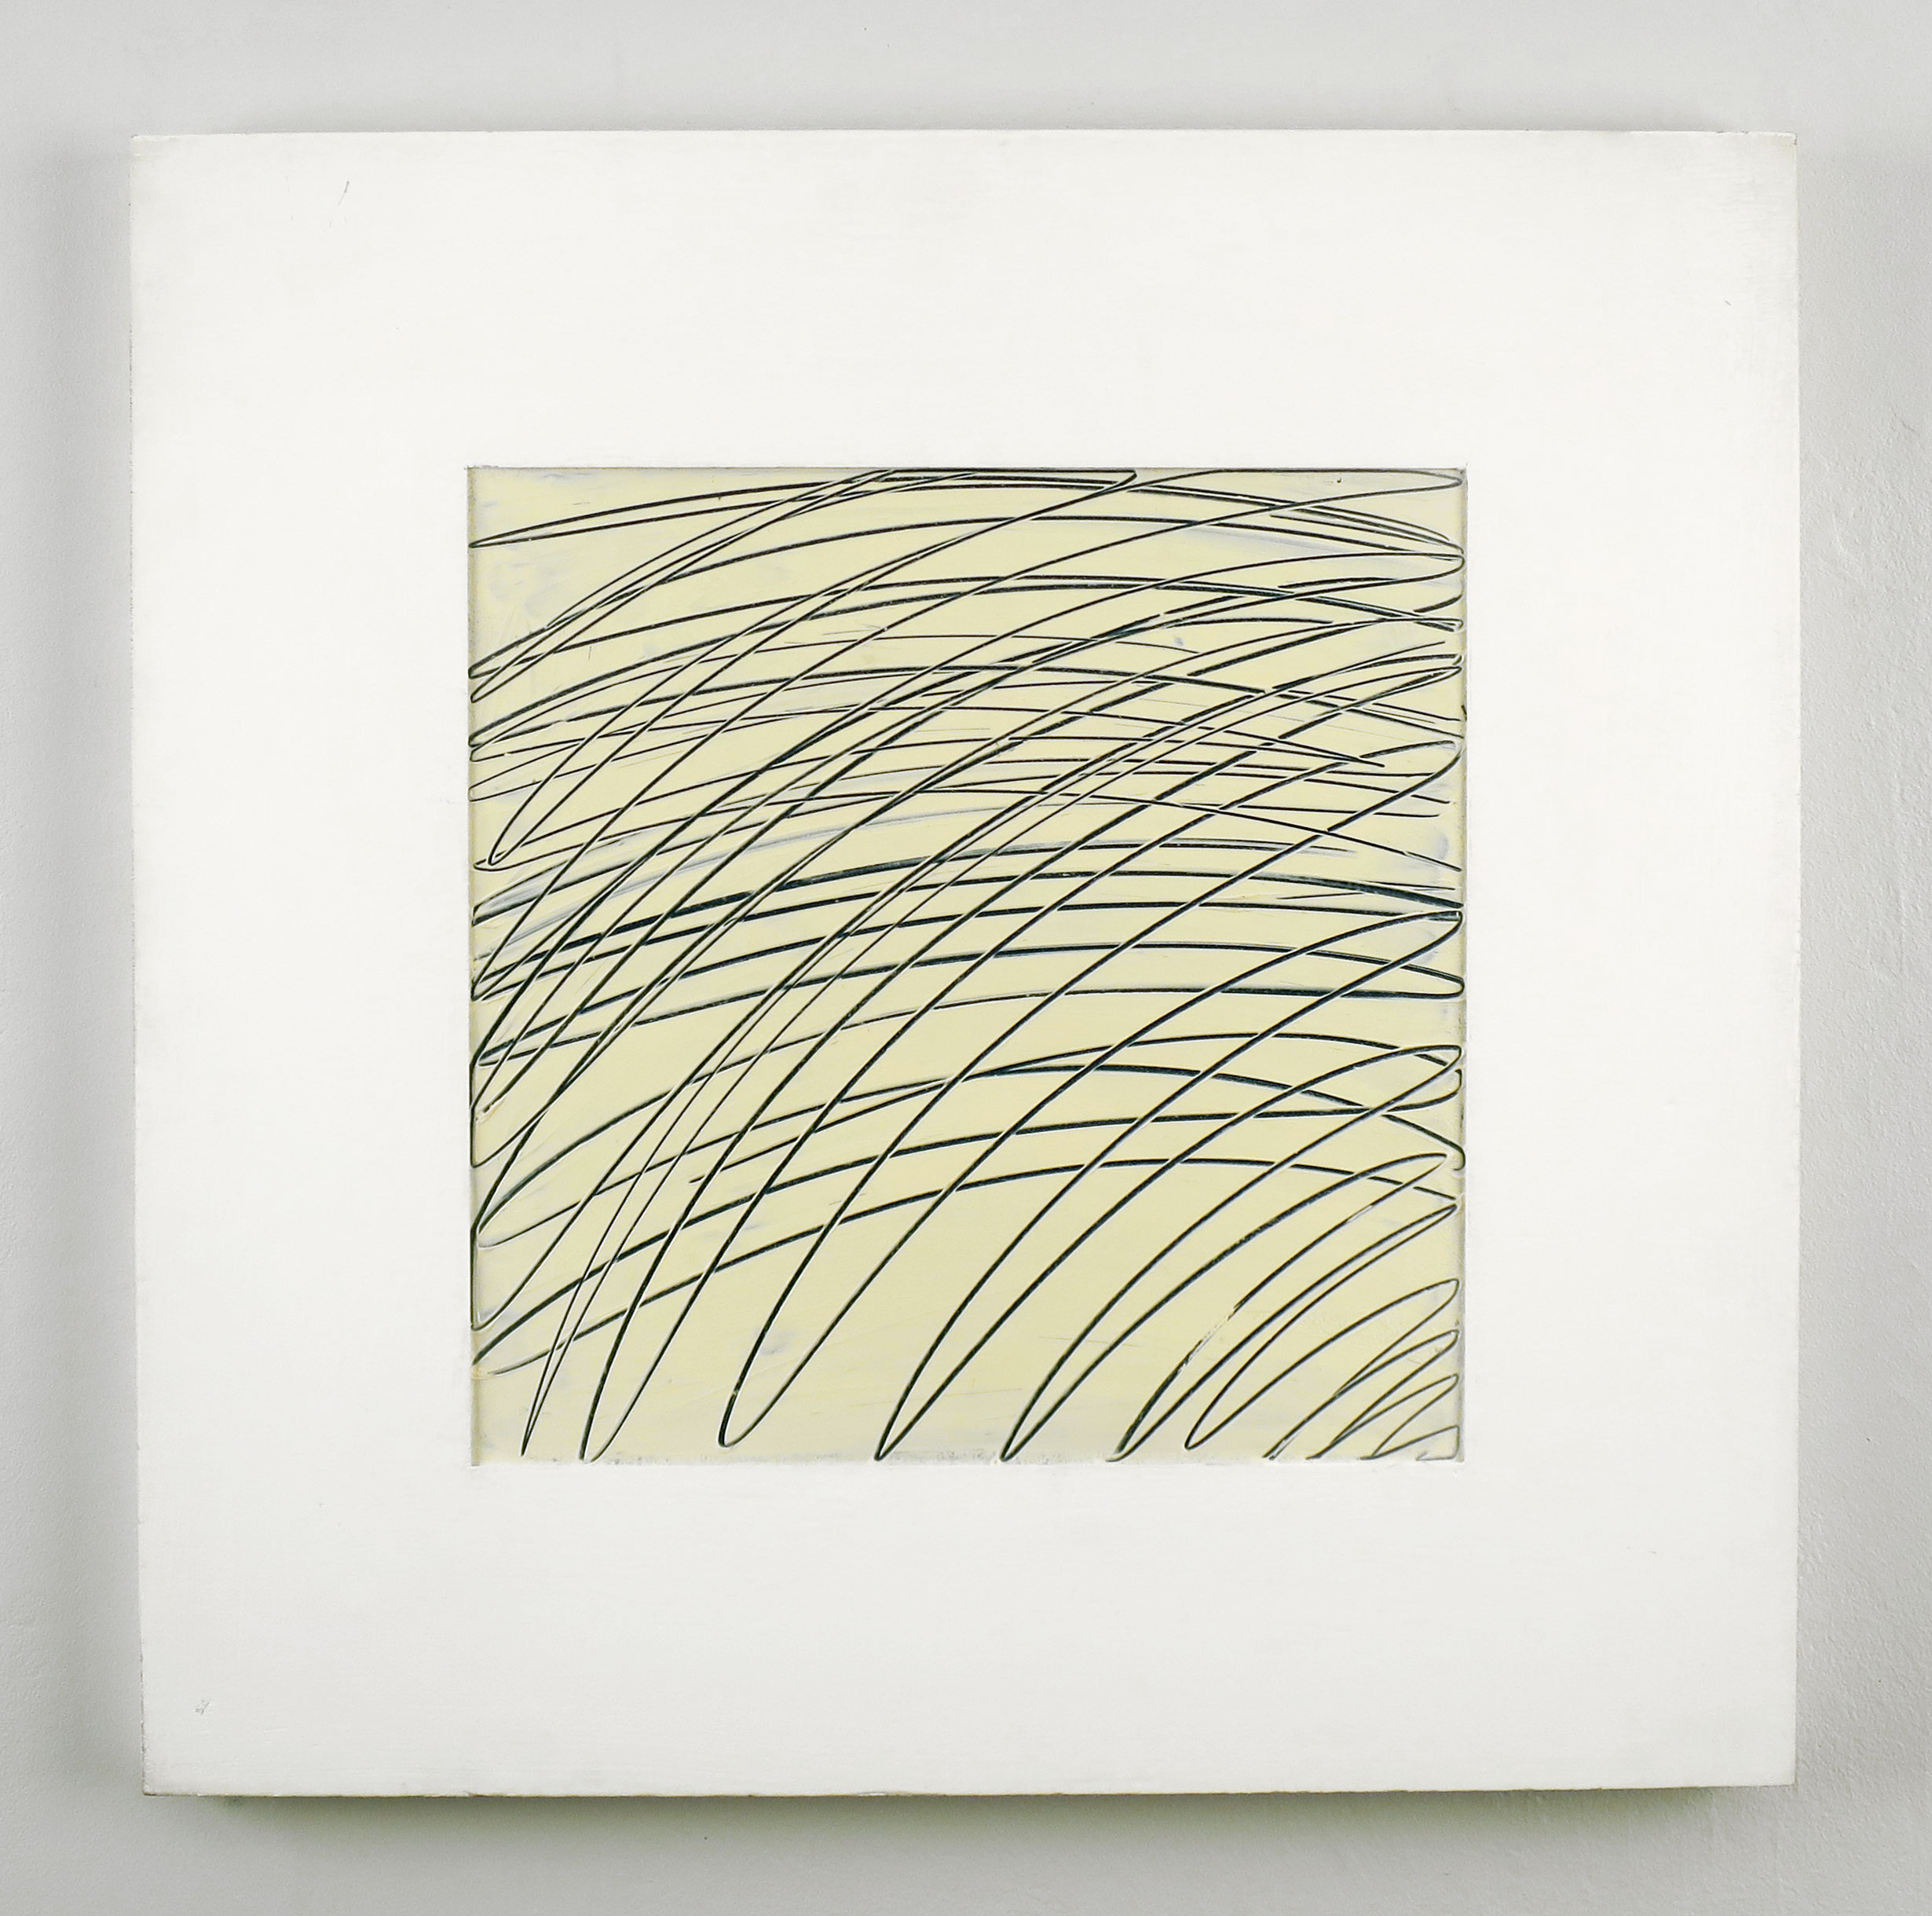 57_Gesture_Project_No_4_1991_Gesture_Square_Gary_Kuehn